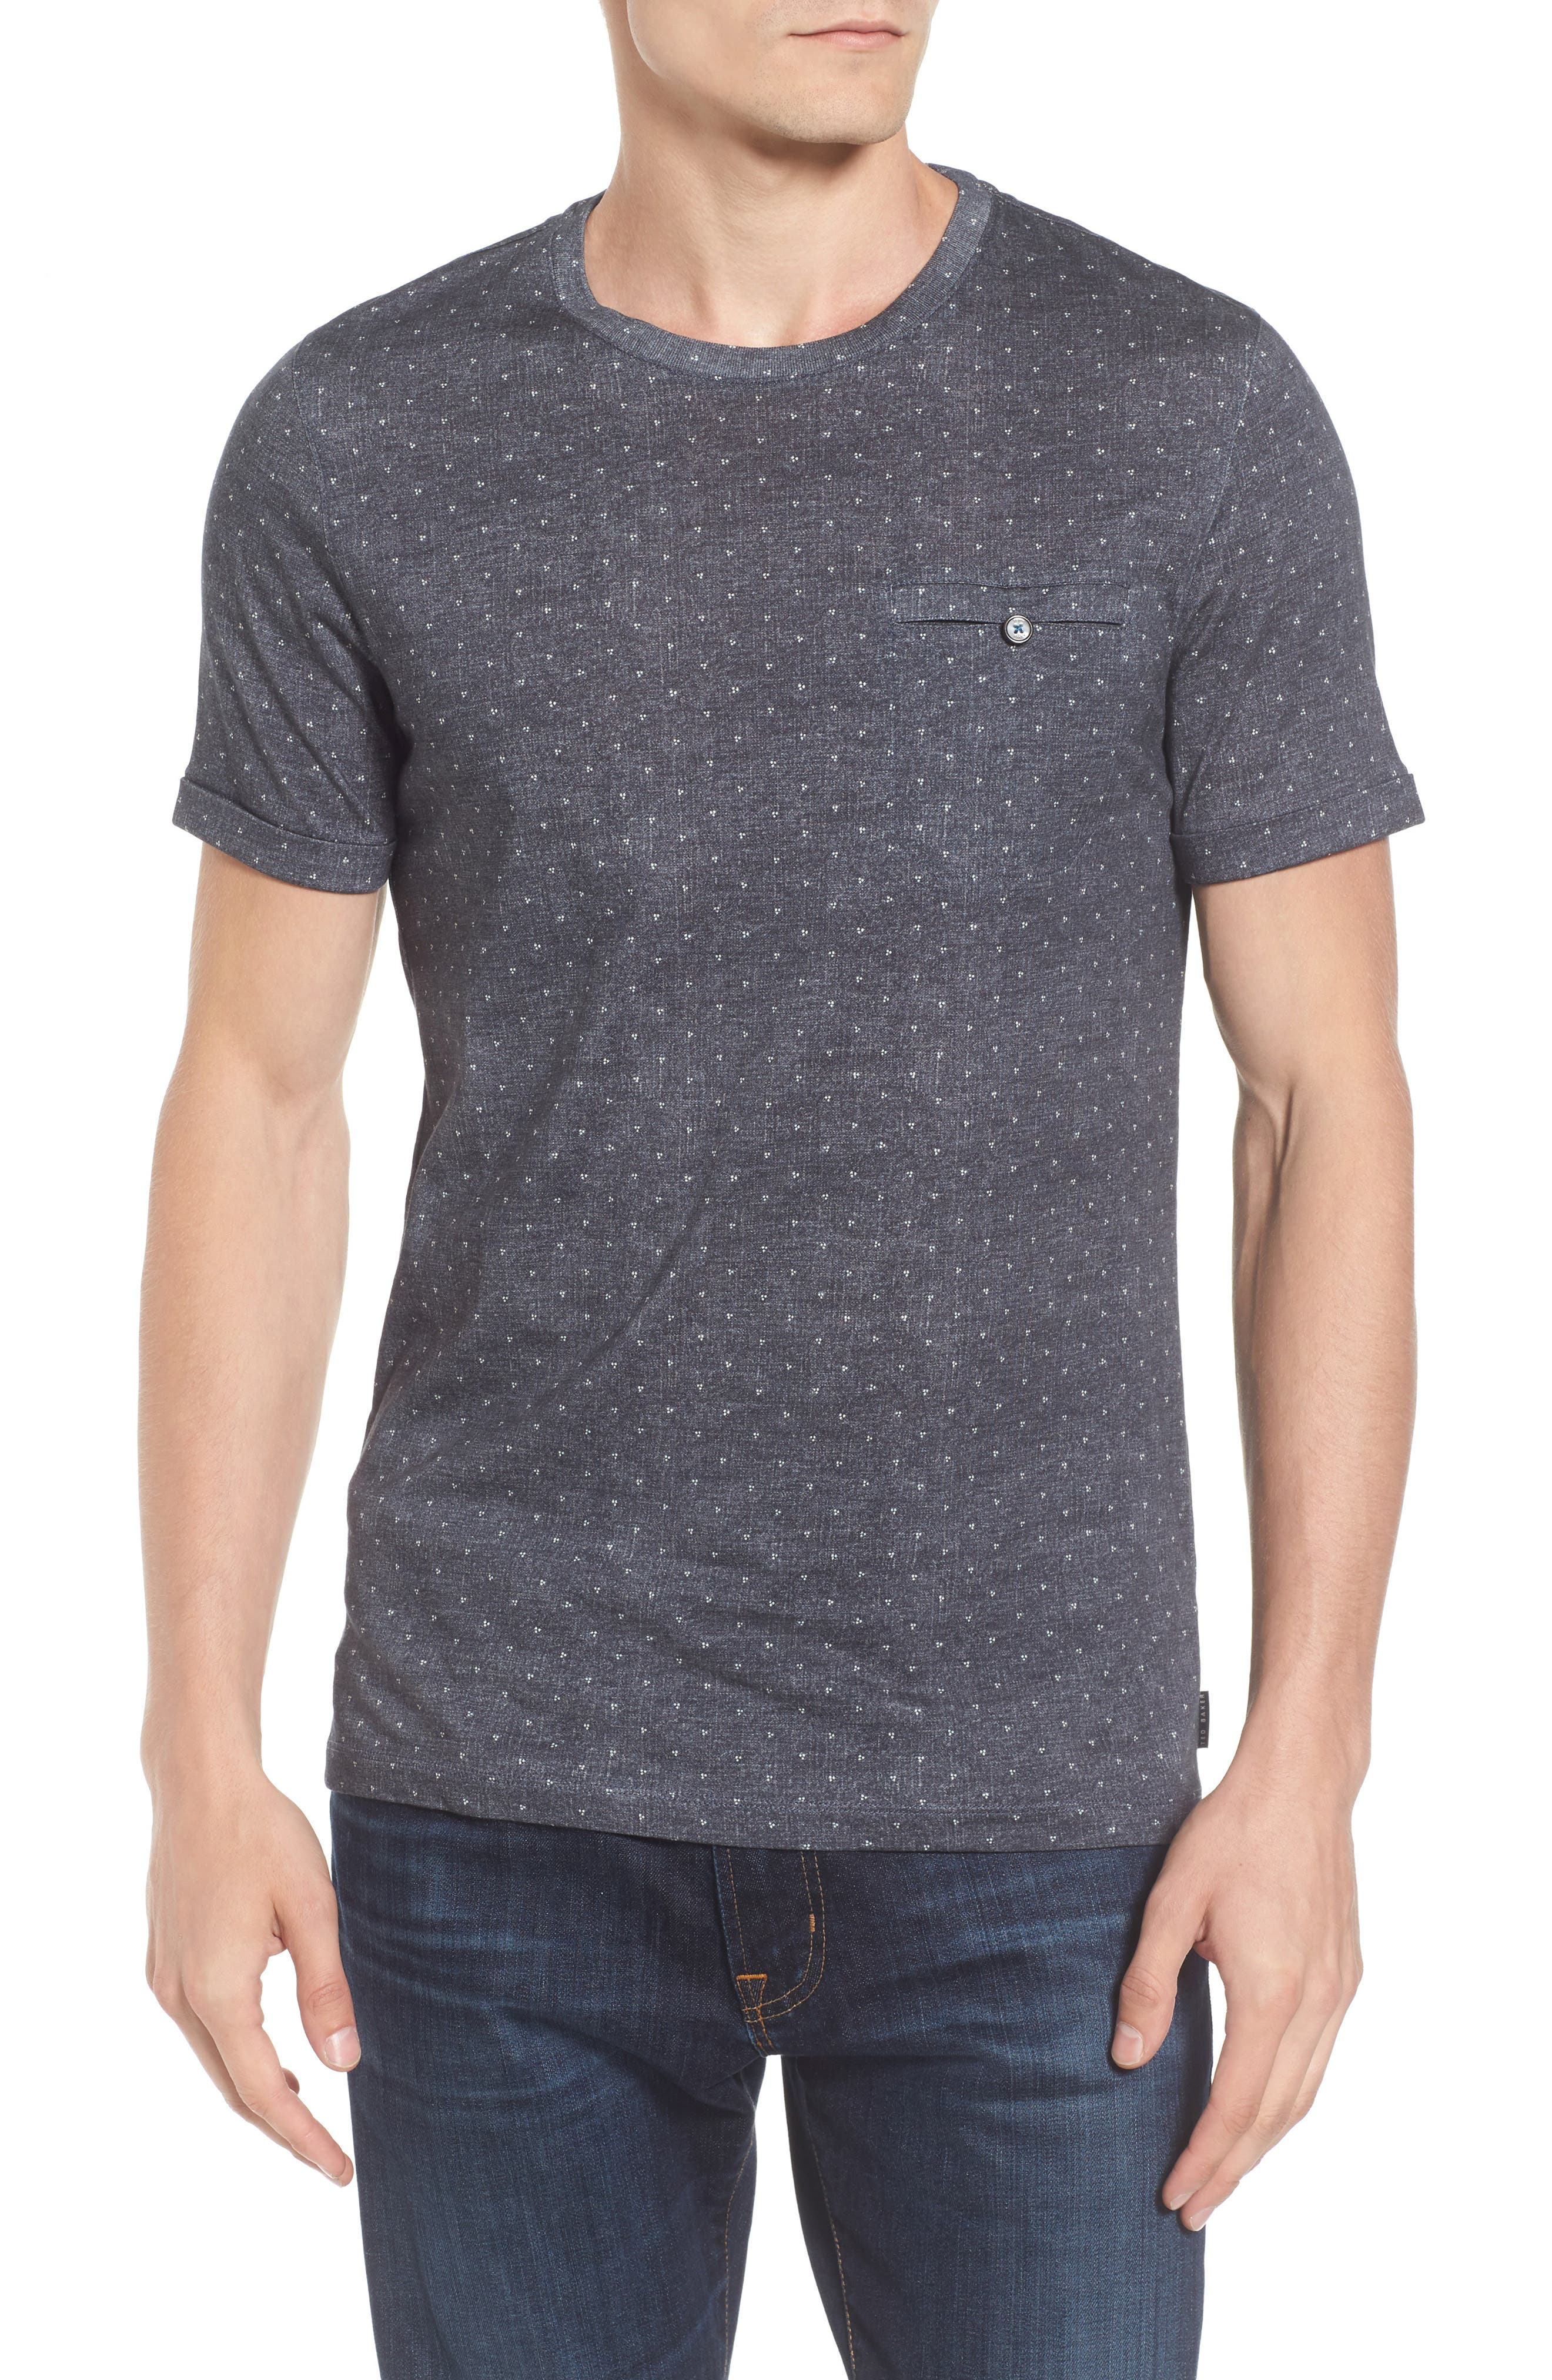 Giovani Modern Slim Fit Print T-Shirt,                         Main,                         color, 410